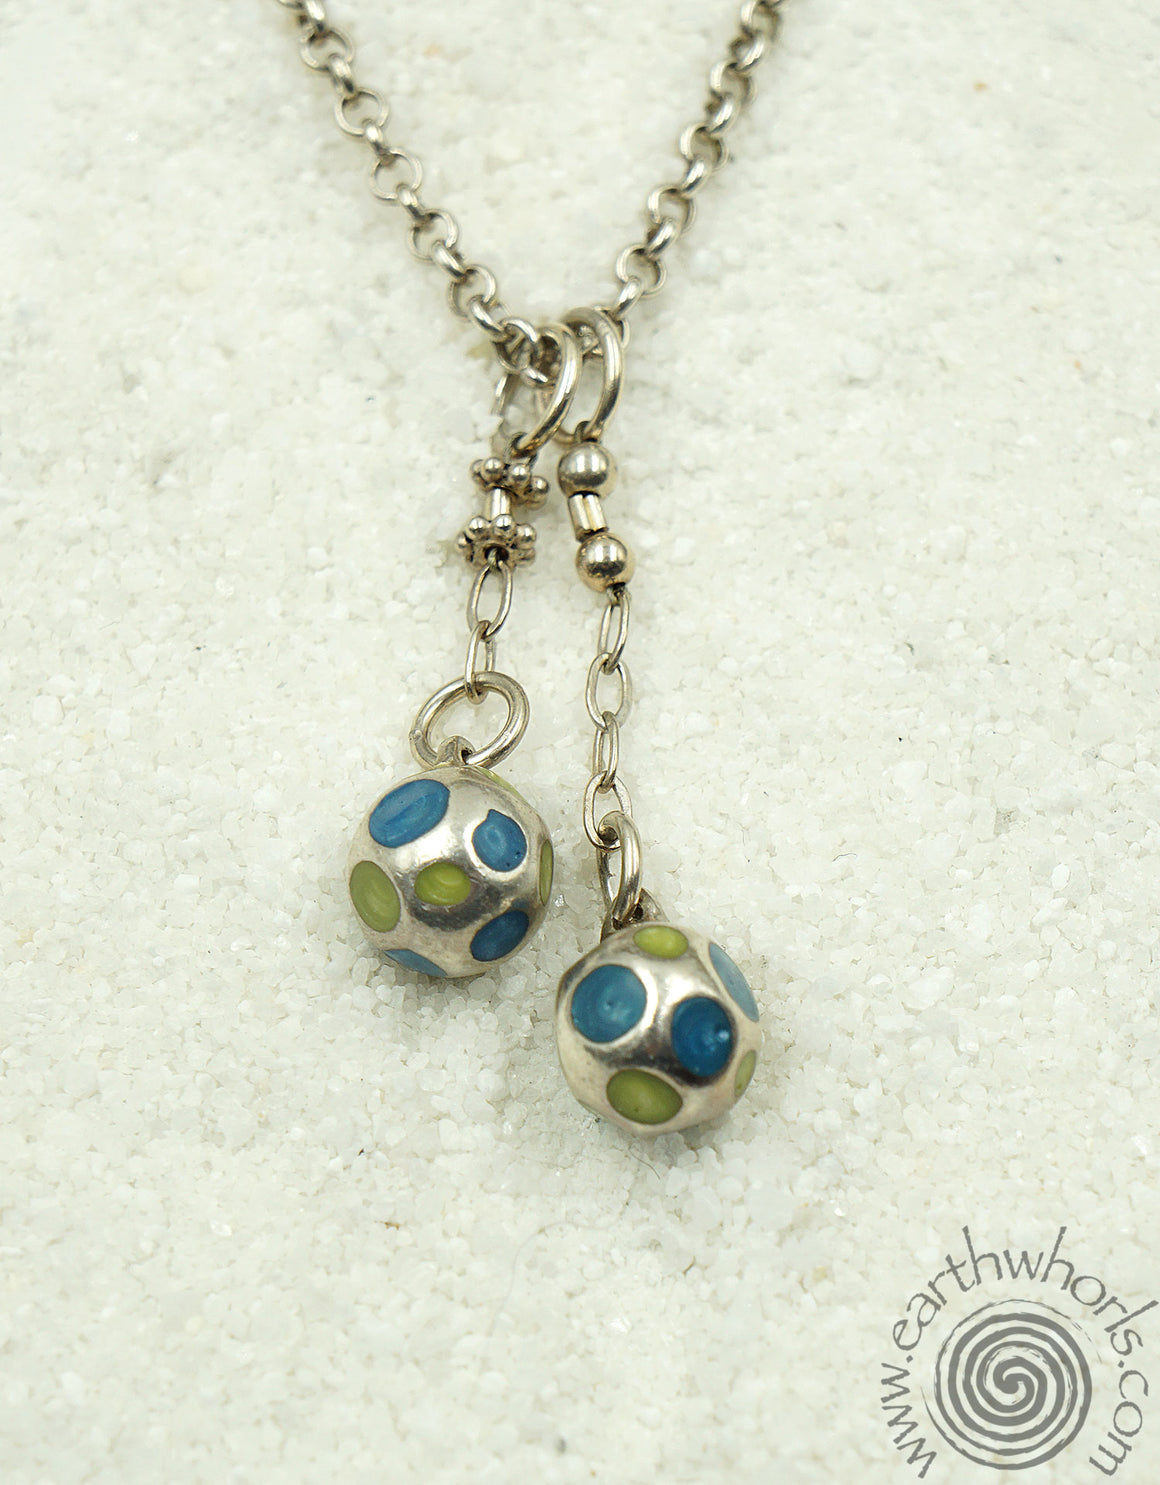 Antique Silver & Sterlin Silver Pendant Necklace - EarthWhorls, LLC